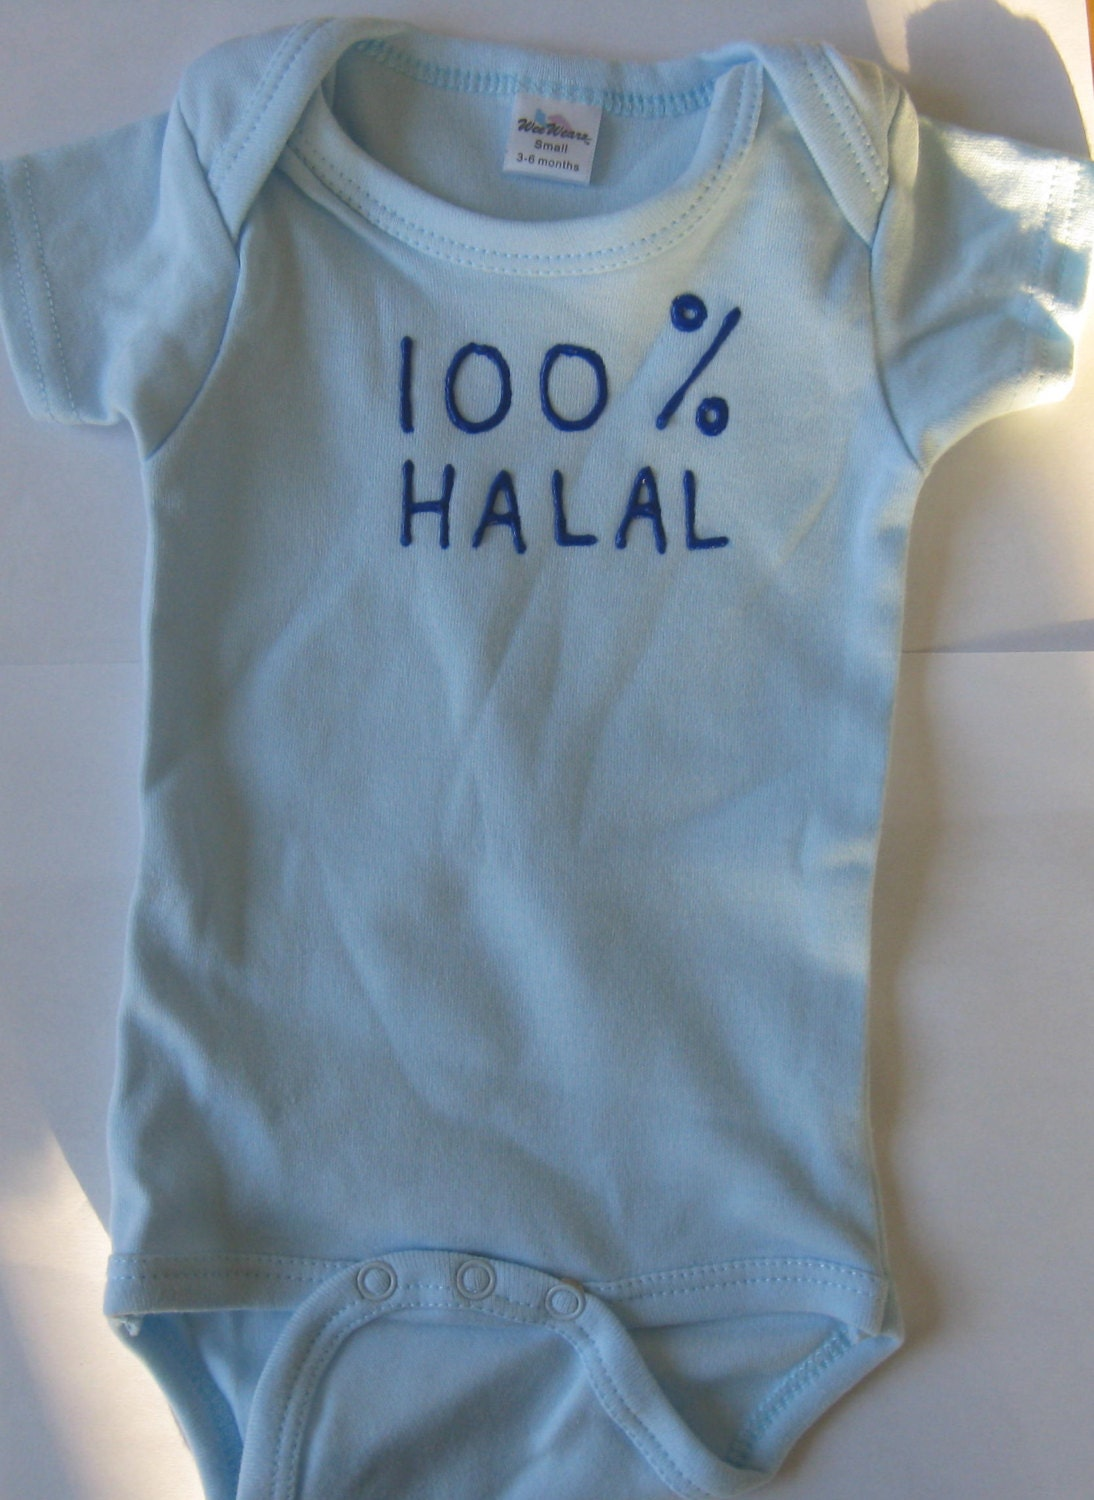 Baby Gifts For Muslim : To mths onesies muslim baby gift islamic